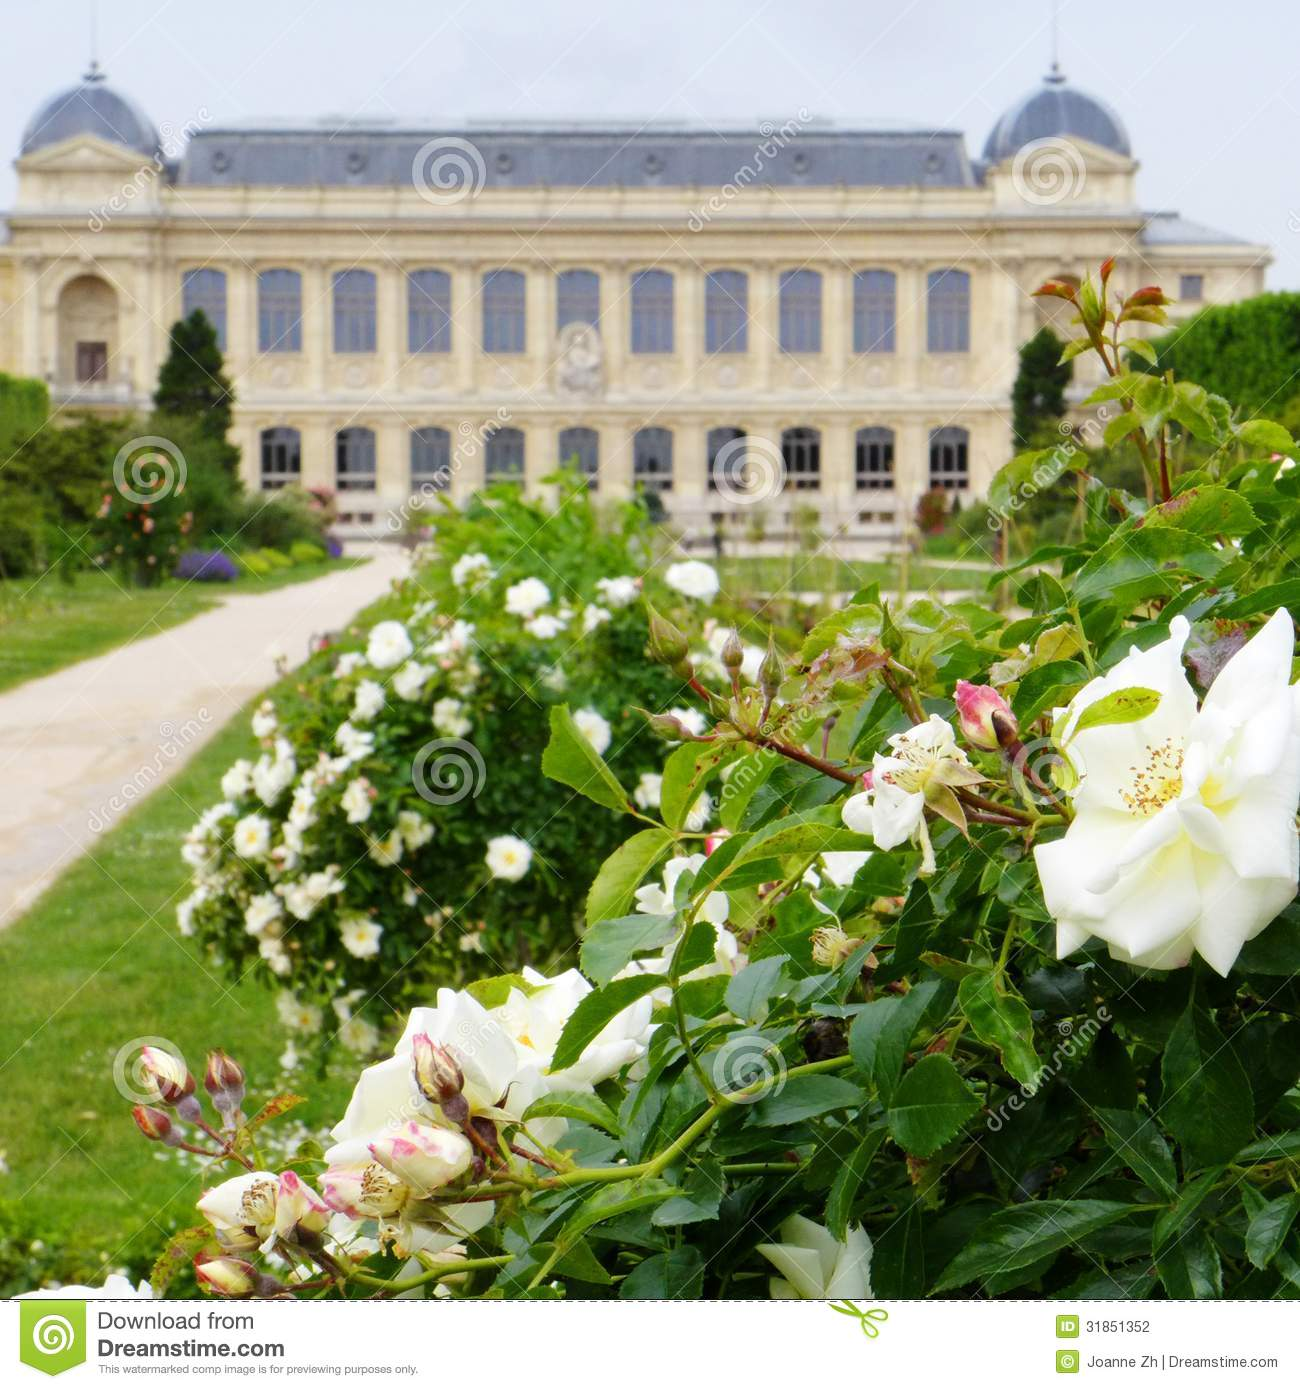 Jardin des plantes paris france stock photo image for Paris jardin plantes